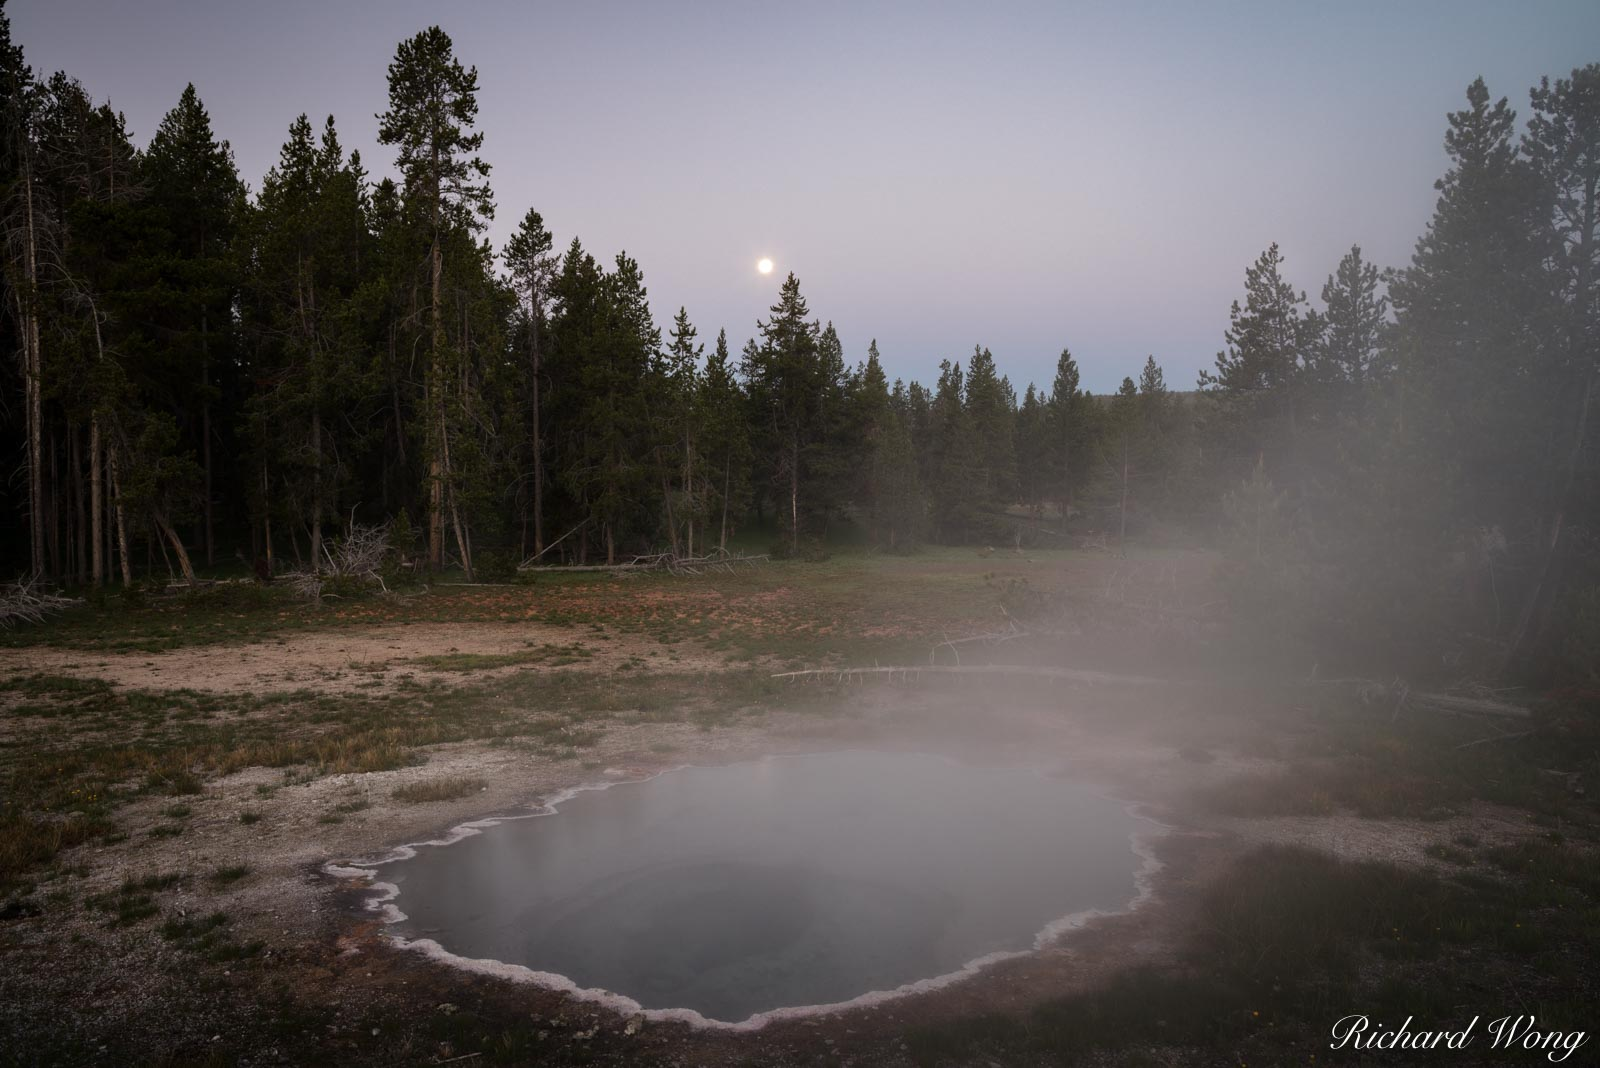 dawn, full moon, geothermal activity, geysers, landscape, moonset, morning, national park system, nature, north america, np, nps, outdoors, outside, rocky mountains, scenery, scenic, shield spring, st, photo